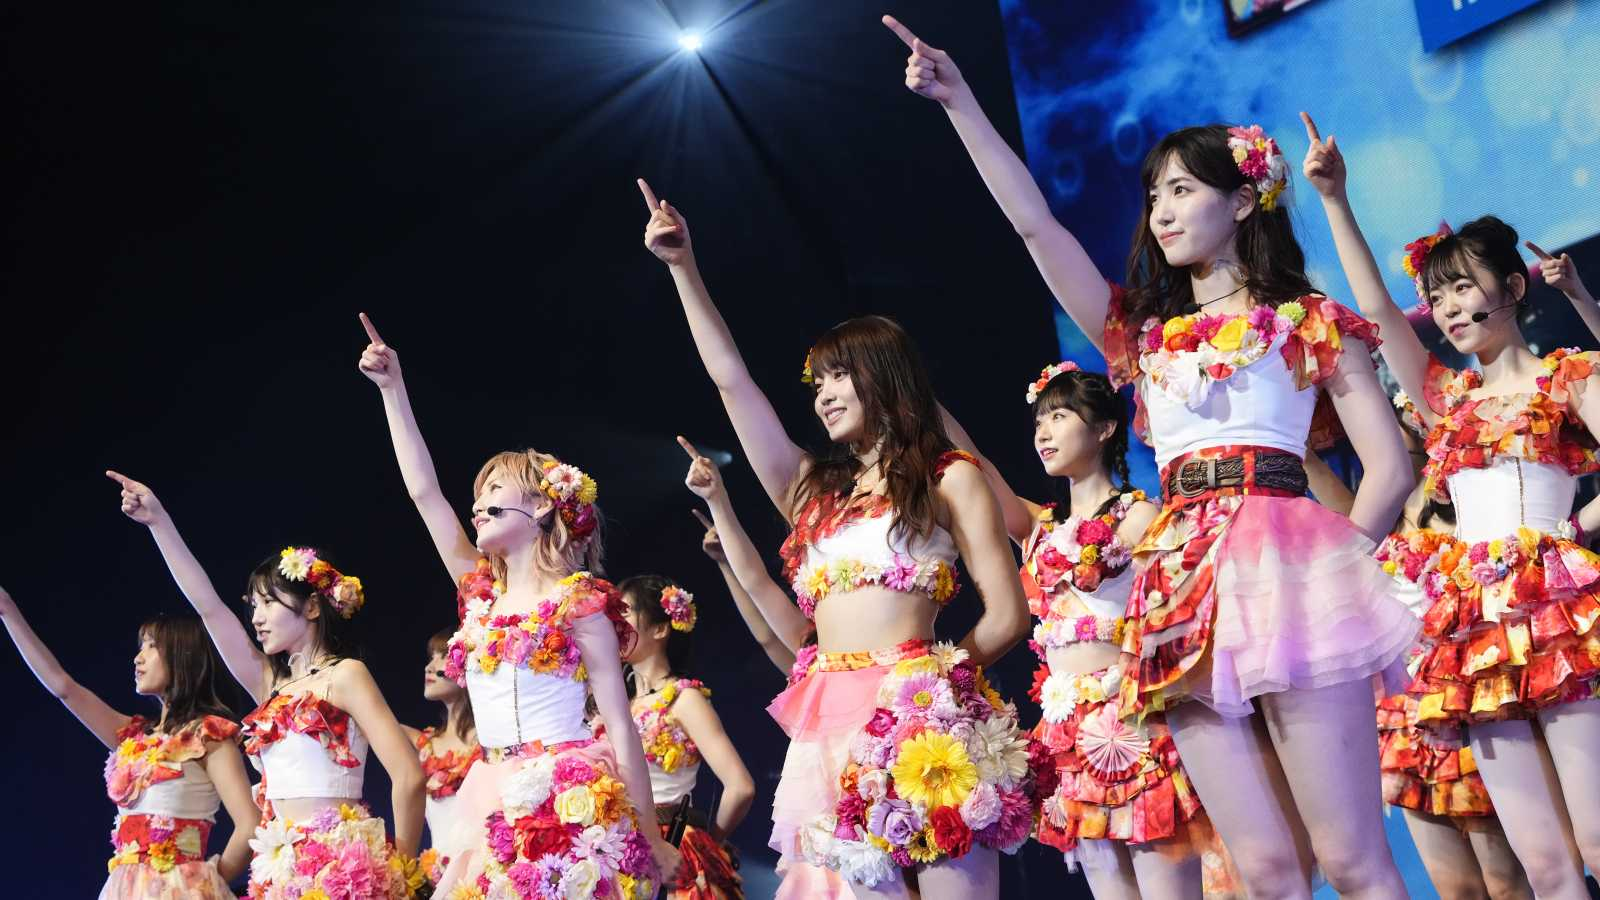 Live Report : AKB48 Group Asia Festival 2021 ONLINE